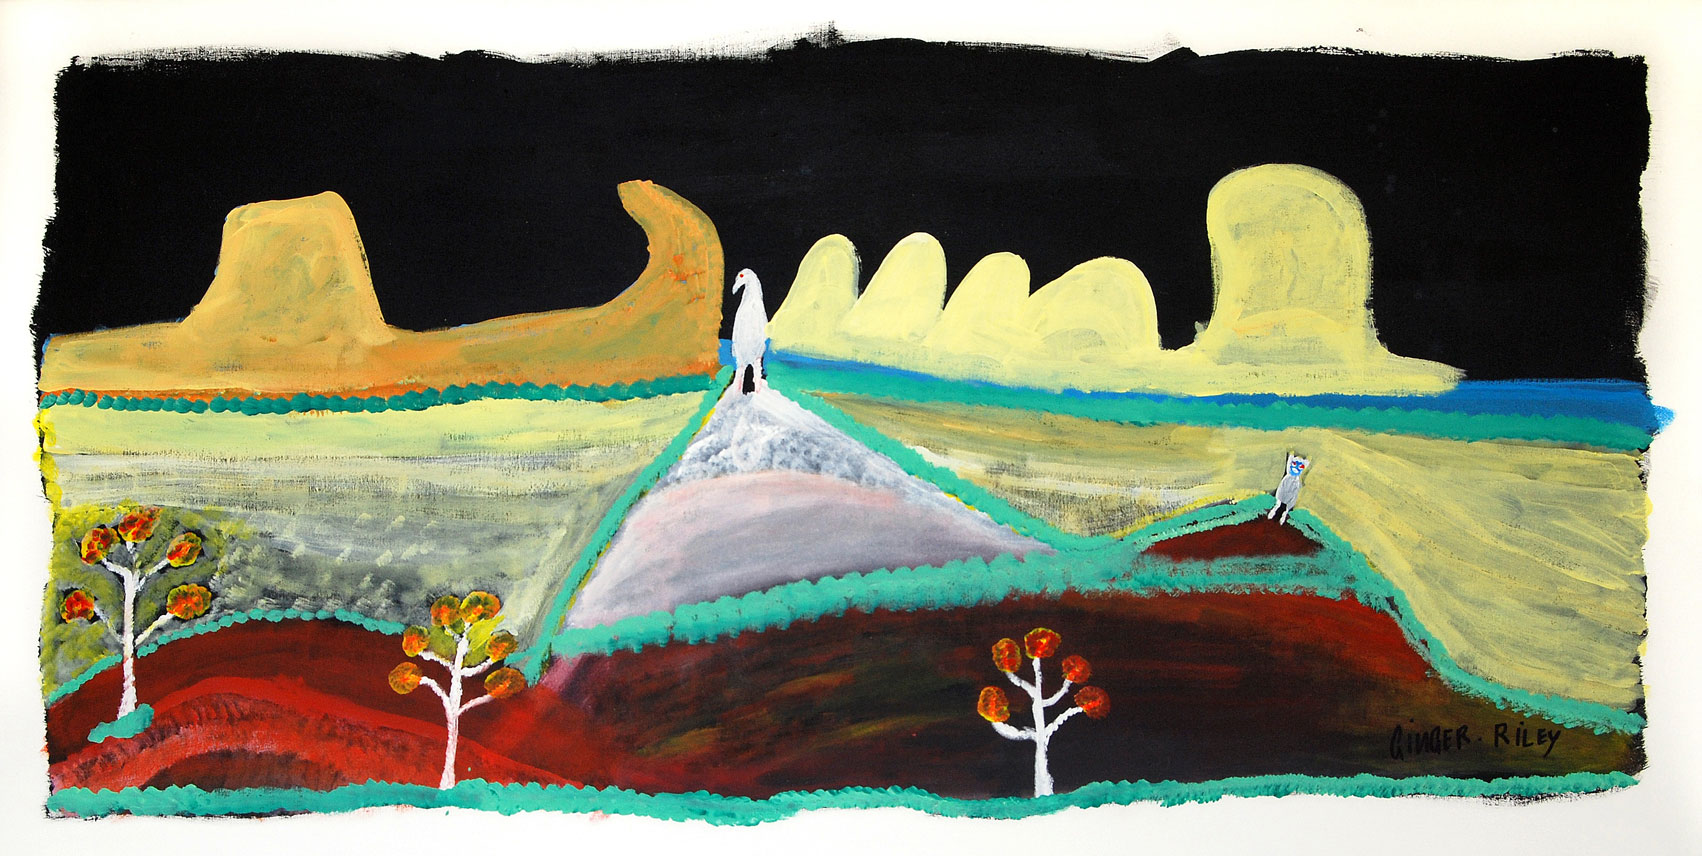 Ngak Ngak and The Owl At Night, 1997   Synthetic polymer paint on canvas 57 x 123cm   Provenance:  Painted at Araluen Art Centre, Alice Springs during an artist in residence in 1997 Alcaston Gallery, Melbourne Private collection   Solo Exhibition: Artist's Retrospective:   Mother in Mind: The Art of Ginger Riley Munduwalawala , National Gallery of Victoria, Melbourne, VIC, 17 July – 22 September 1997   Group Exhibition:   Agents of Change , Biennale of Sydney, Art Gallery of New South Wales, Sydney, NSW (dates tbc). The artist shared the ground floor at the Biennale with Yoko Ono   Literature:   Judith Ryan,  Mother in Mind: The Art of Ginger Riley Munduwalawala , Melbourne: National Gallery of Victoria, 1997, p. 104 (colour illustration).  Cf. For related examples see,  Ngak Ngak – Night time , 1989 in The Holmes a Court Collection and  Garimala, Ngak Ngak and the Four Archers in Limmen Bight Country , 1997 in the Macquarie University Art Gallery.    Ngak Ngak and the owl at night, 1997   is a particularly rare example and significant milestone for the artist. Riley, as caretaker of his mother's country, was only allowed to paint the sun, rain and clouds but never the moon, stars or wind. In this example the artist adhered to cultural restrictions by not painting the moon but rather bathing his mother's country in moonlight.  Centre stage is a small Ngak Ngak, the white breasted sea eagle. Riley is considered to be Ngak Ngak, inheriting it from his mother and here, he is seen keeping watchful eye over the Marra landscape. The owl is also an important totem in his Mother's Country.  In the distance is the rock formation known as the 'ruined city' located near Borroloola in the Northern Territory. Riley was awarded  Jungkayi  (custodian) status for this site during this time. It is a very important site in Marra Dreamtime but it also exists today despite being relatively unknown and hidden off the tracks.  The bright blue Limmen Bight River can be seen on the far lef